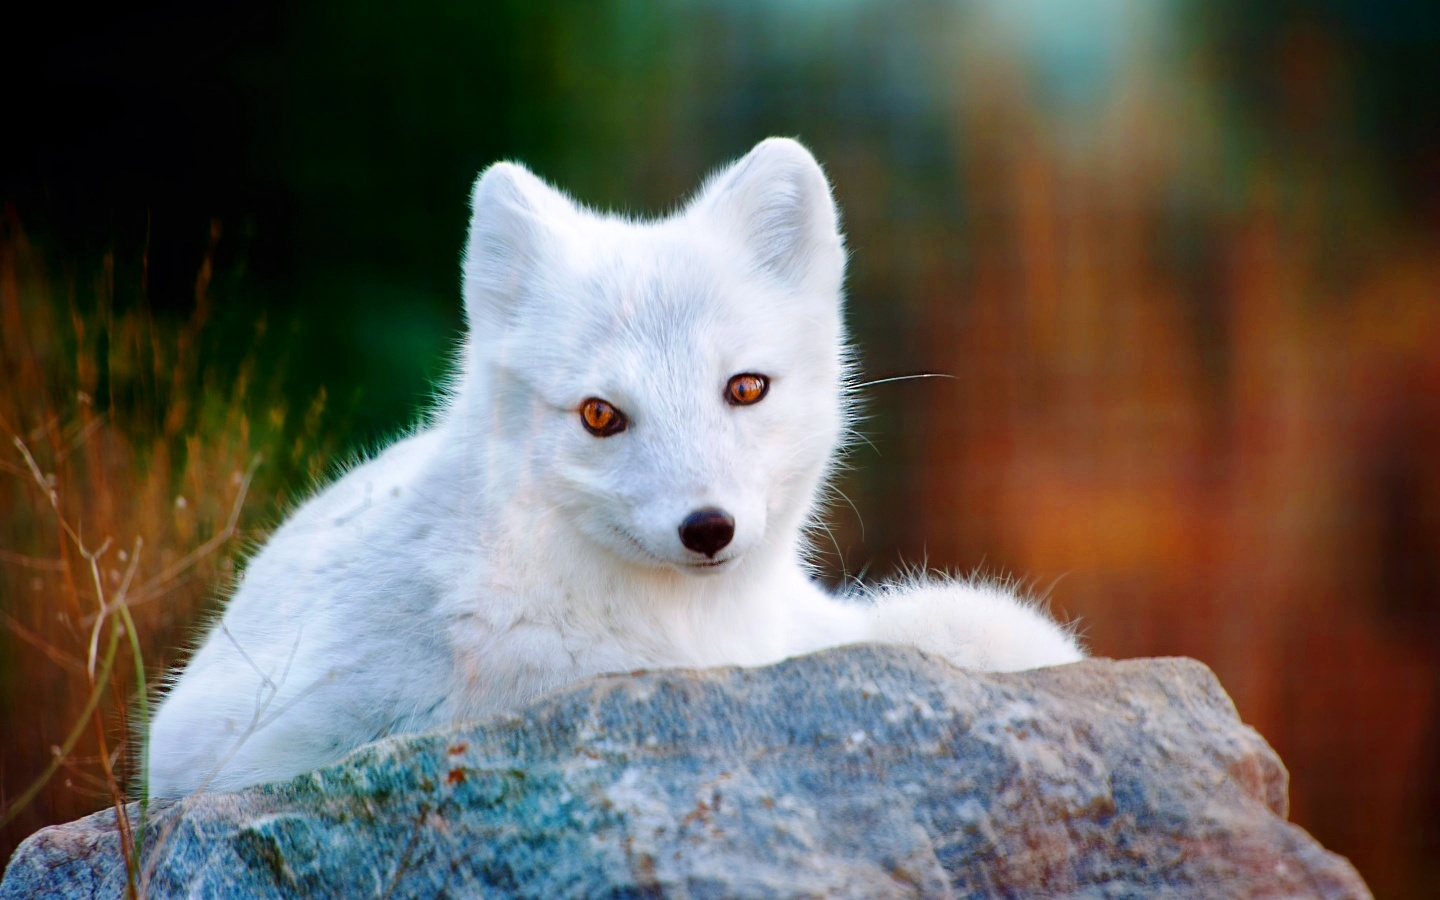 Lobo animal www imgarcade com online image arcade - White Polar Arctic Fox Wallpapers 1440x900 306838 White Arctic Fox